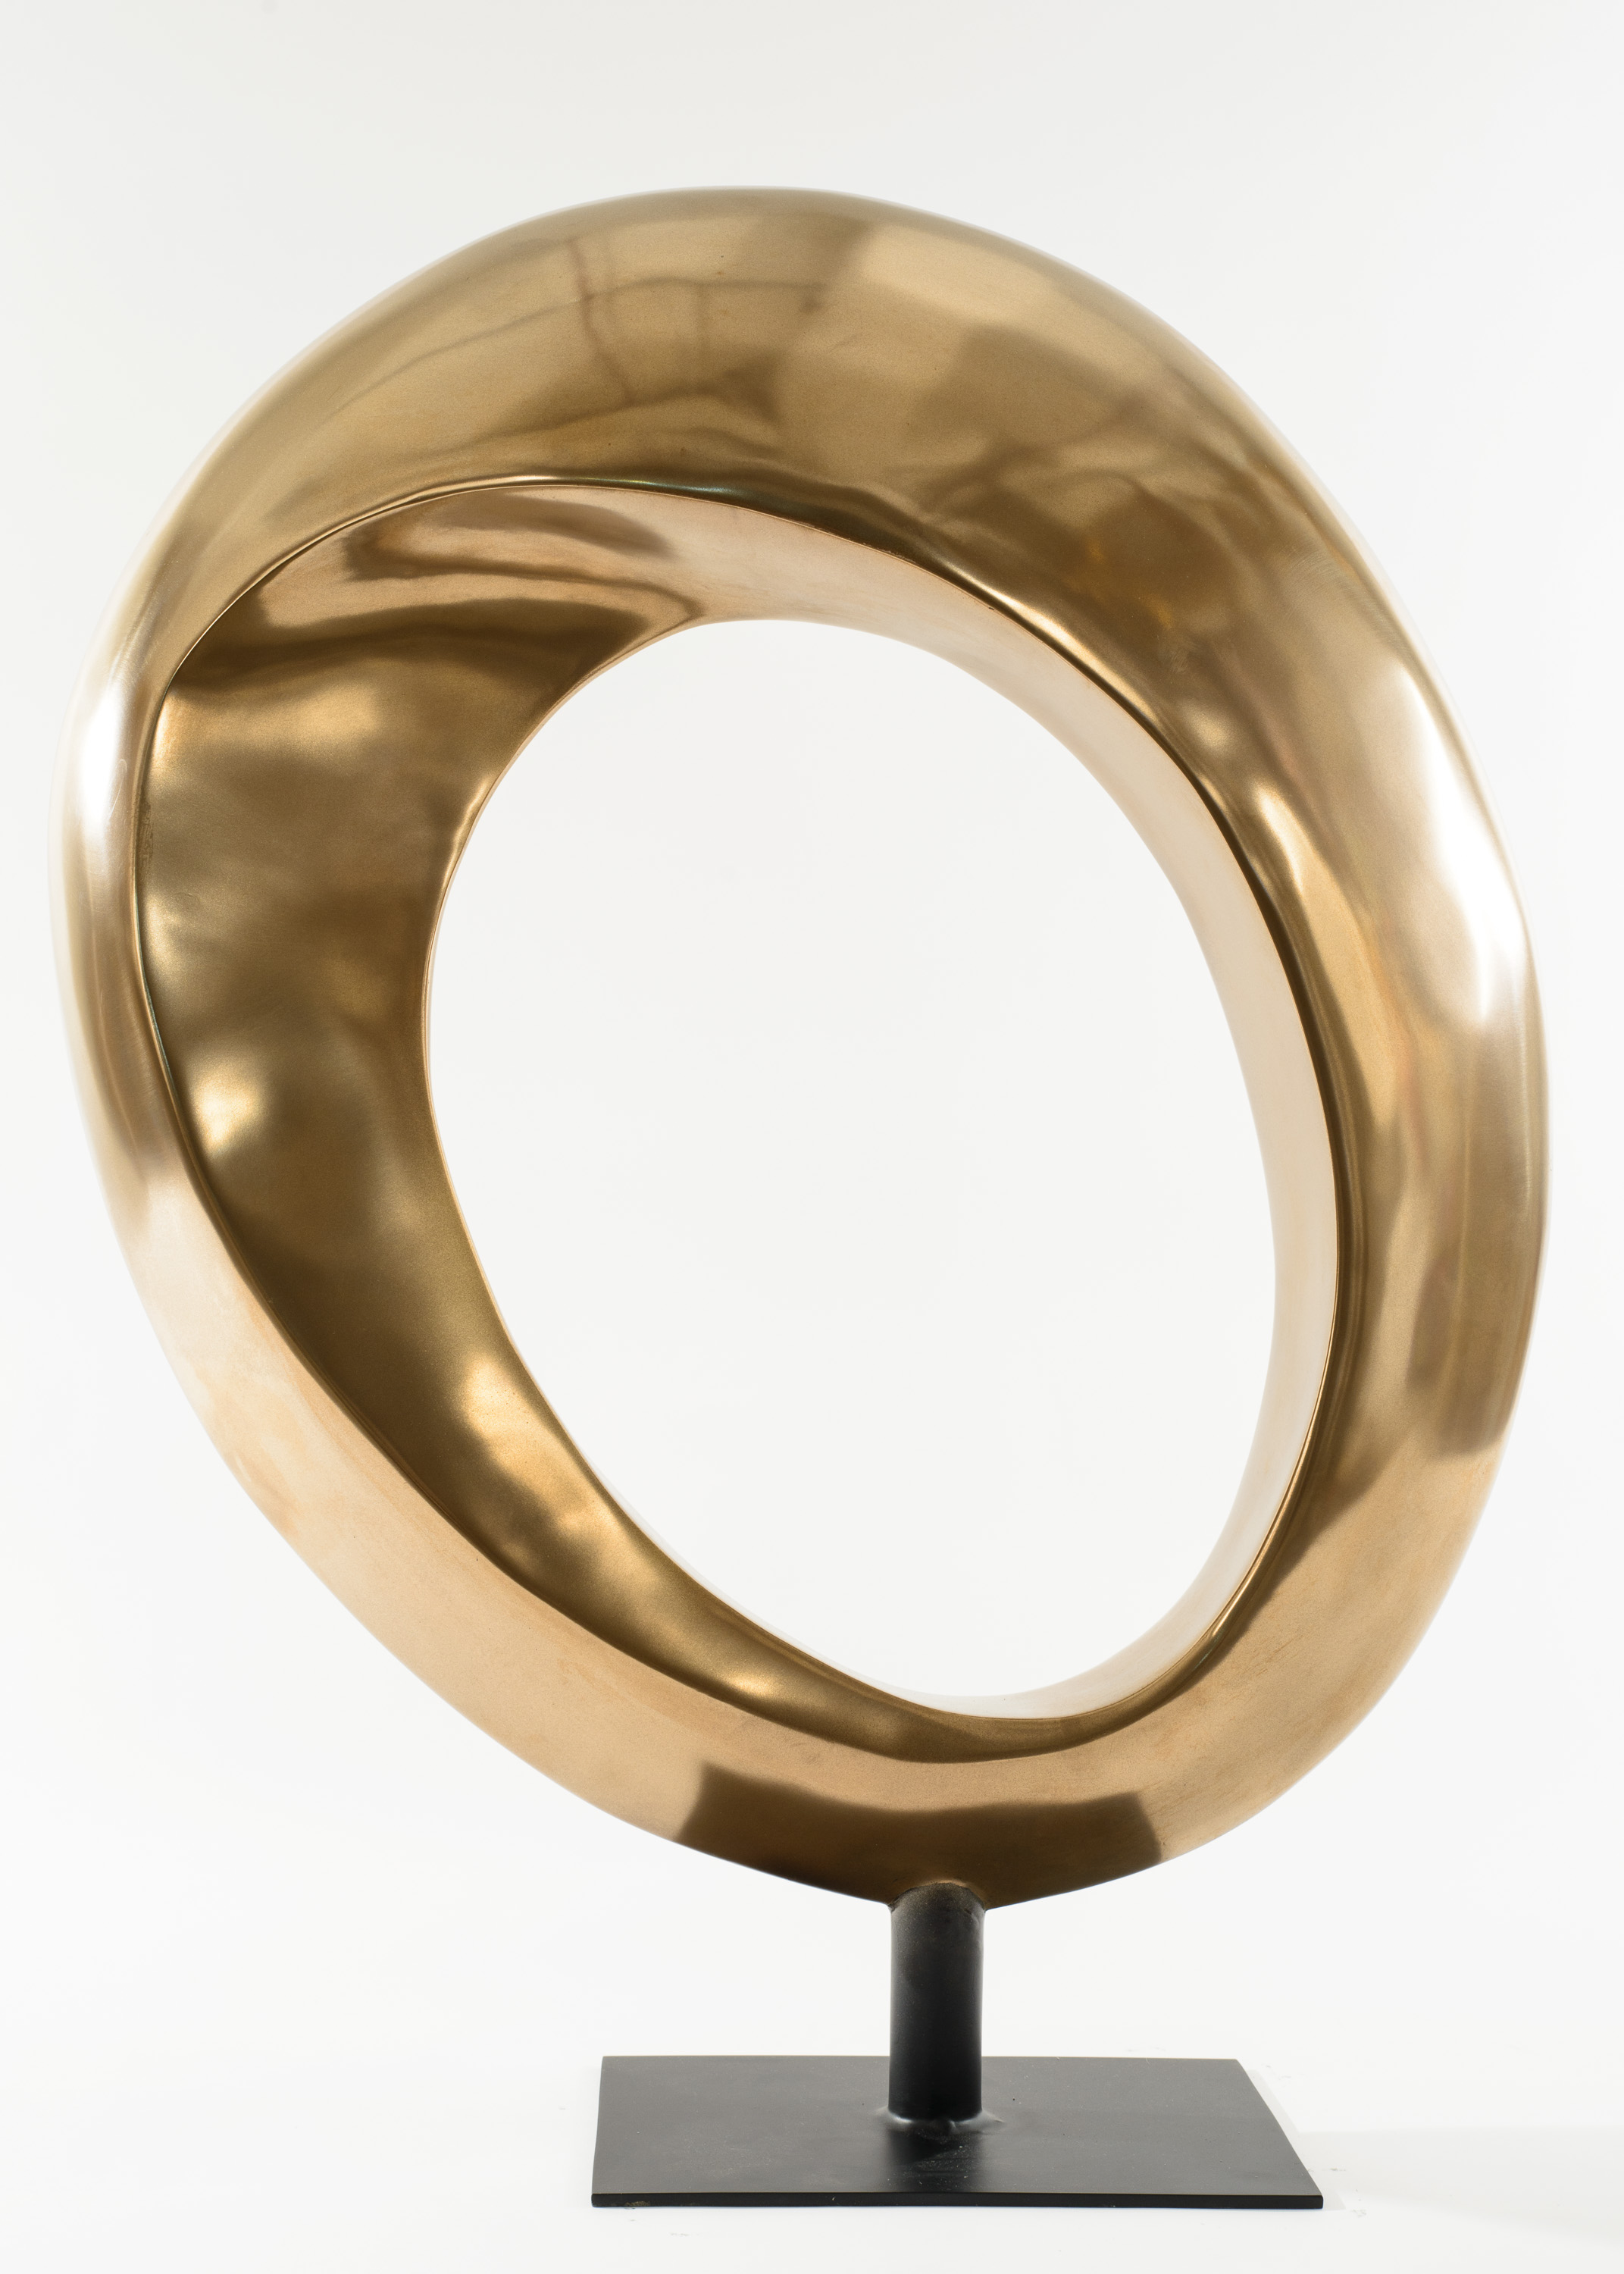 Contemporary Resin Sculpture Of A Stylized Hoop With A Bronze Finish  Supported On A.